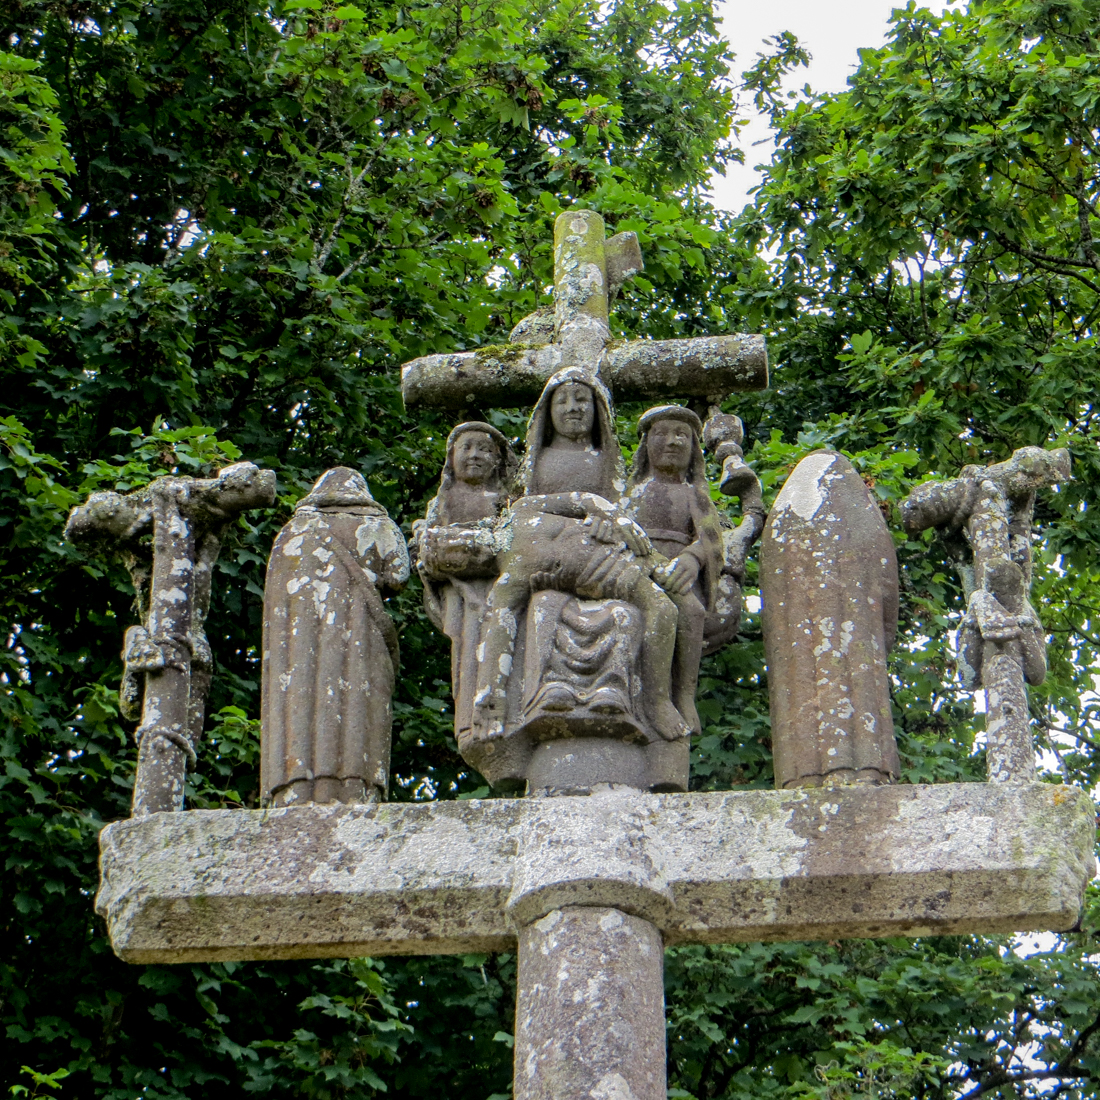 The Calvary of the Church of Bonne Nouvelle, Locmaria Berrien